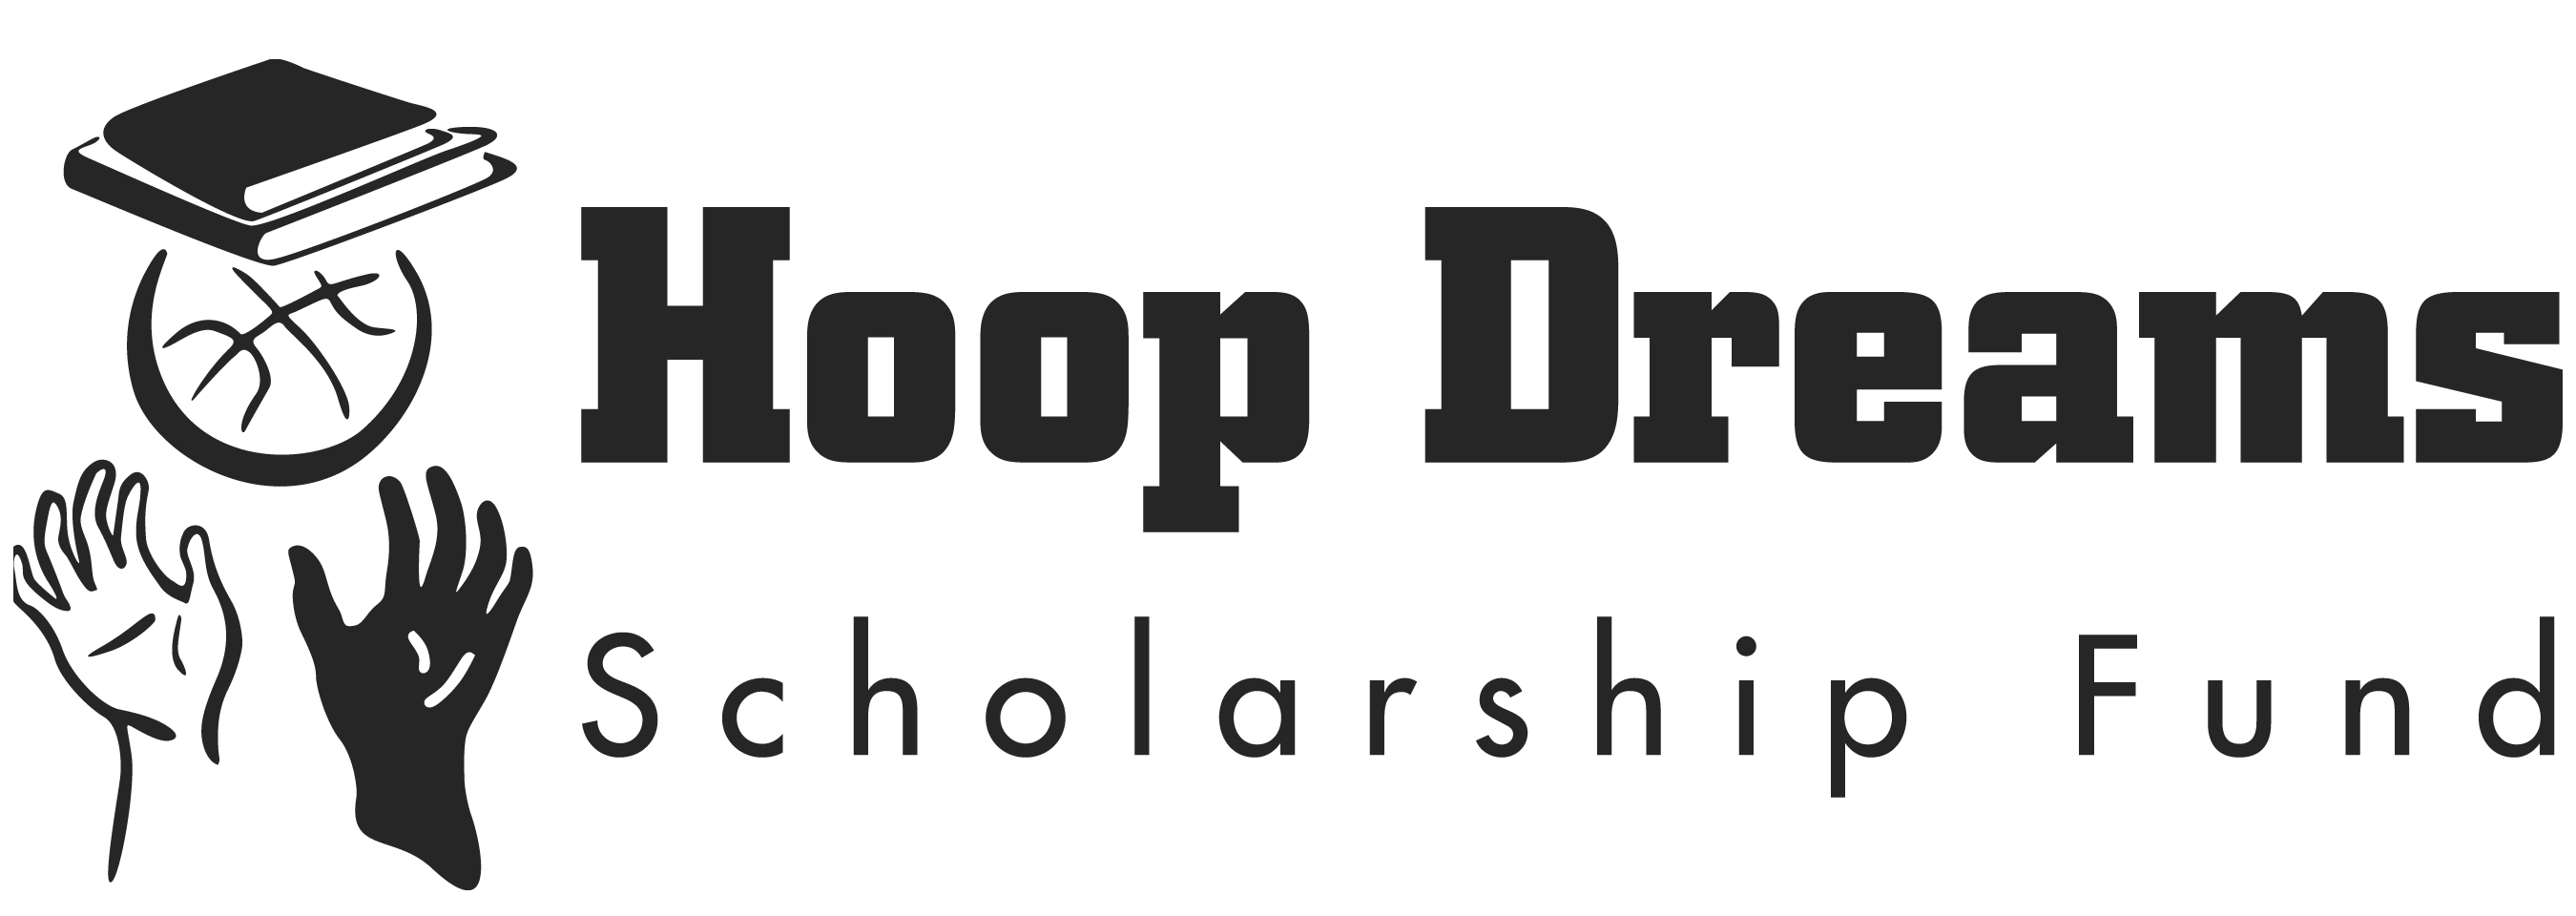 hoop dreams scholarship fund profile sign in or create an account to view form s 990 for 2009 2009 and 2008